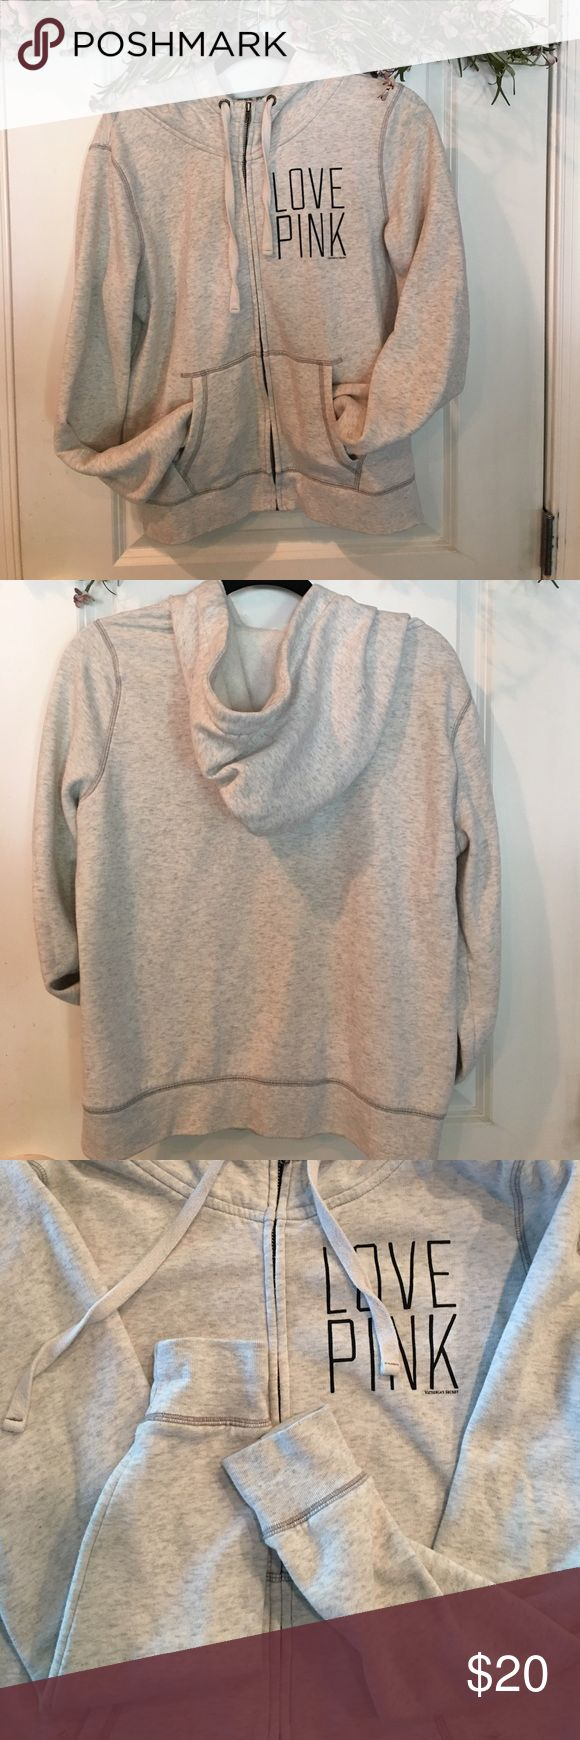 V.S. Pink Hoodie Victoria's Secret Pink Size Large grayish/cream Zip up hoodie! Good Condition. No stains. Just some little fabric balls from wearing and washing but still looks fine and would come off with fabric shaver 😃 PINK Victoria's Secret Tops Sweatshirts & Hoodies